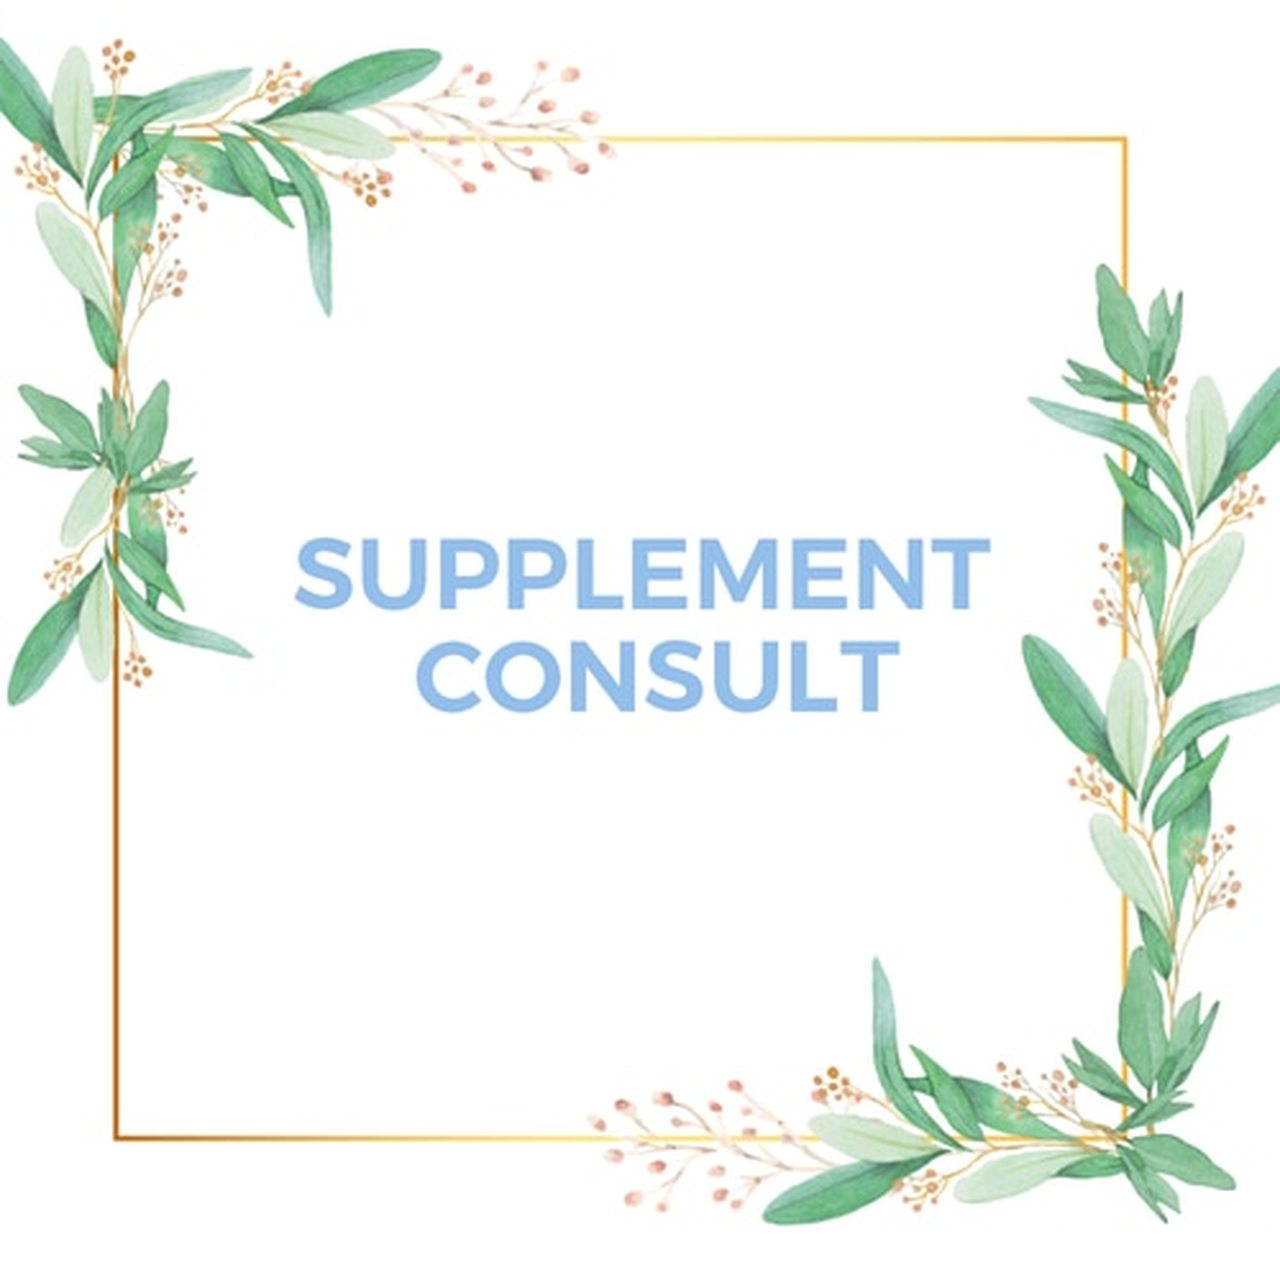 Supplement consult.jpg